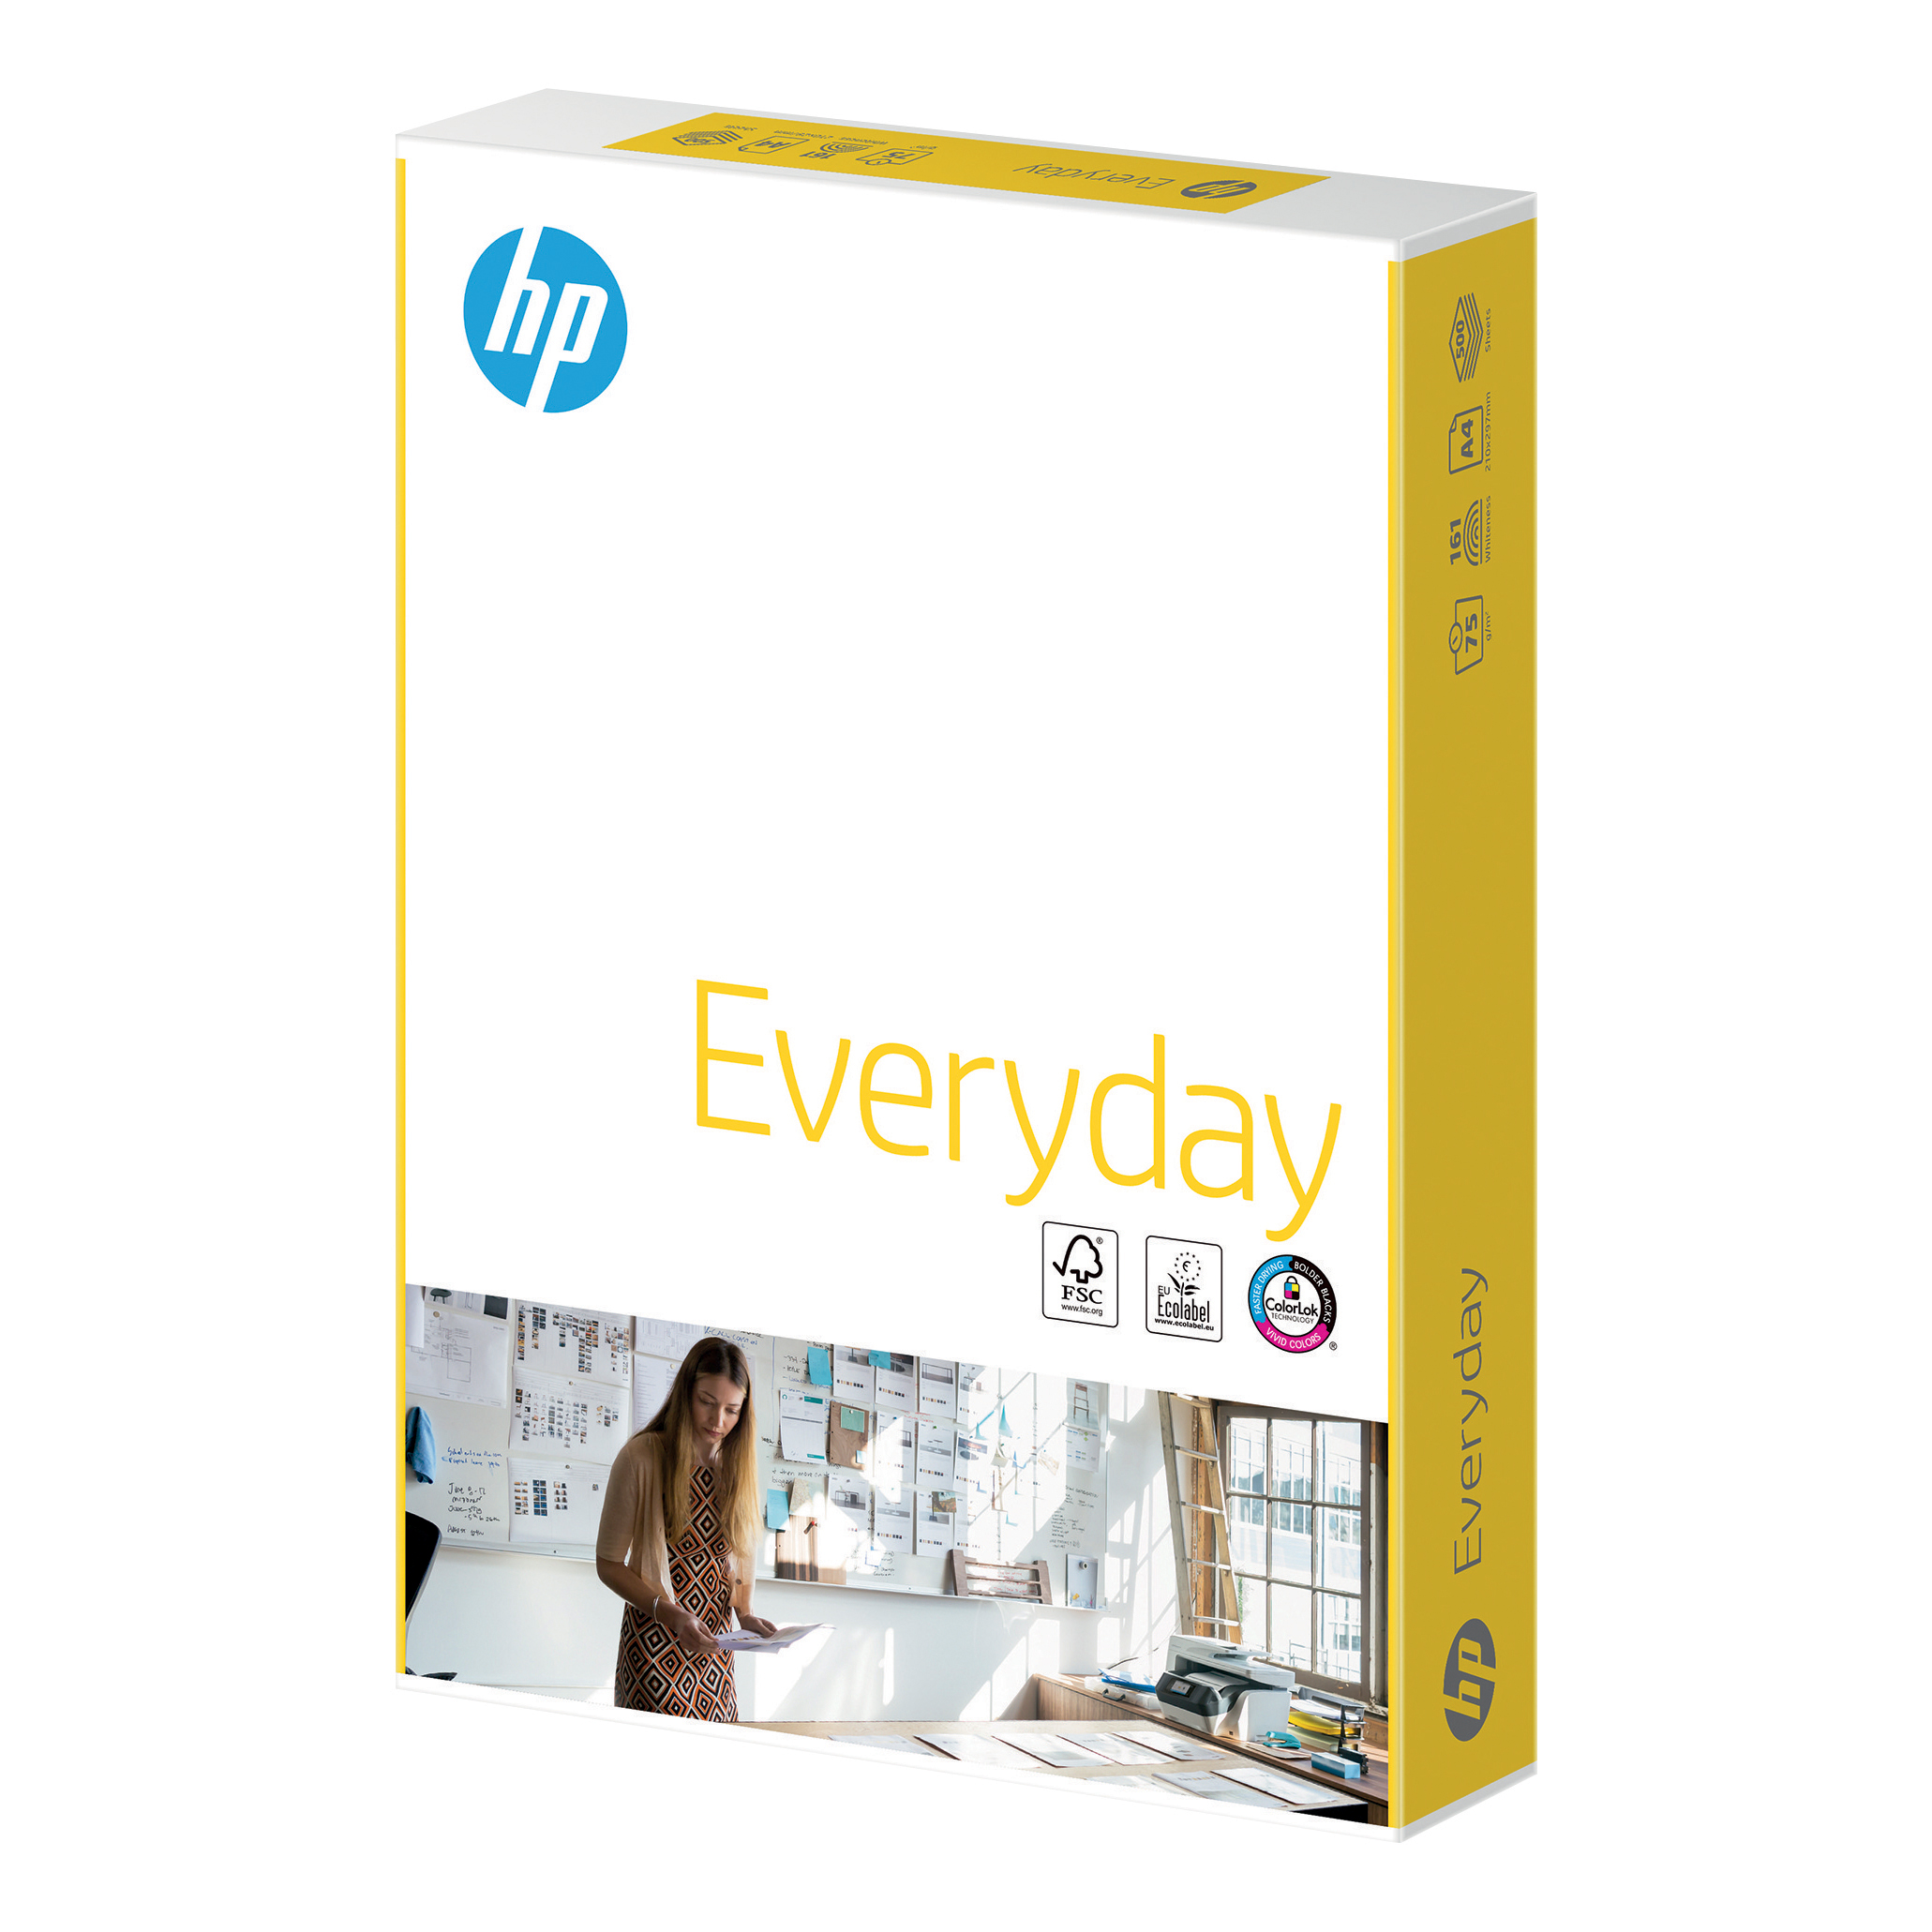 Hewlett Packard HP Everyday Paper FSC Colorlok 5x Ream-wrapped Pk 75gsm A4 White Ref 87931 [2500 Sheets]